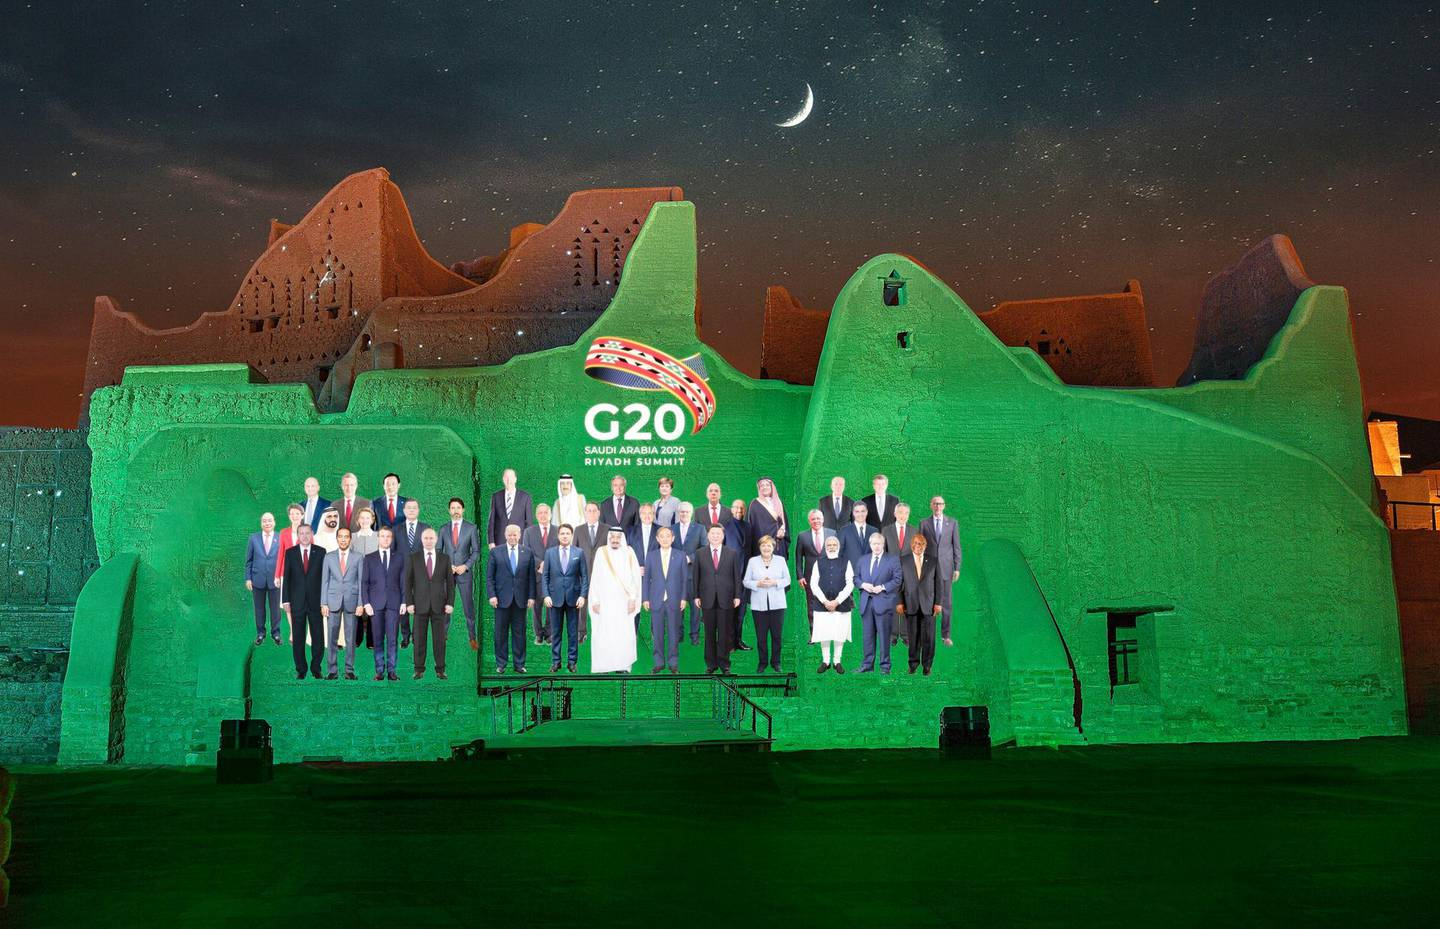 In this handout image provided by DGDA, Diriyah Gate Development Authority of Saudi, a family photo featuring members of the G20 is projected onto the walls of Salwa Palace, At Turaif on Saturday, Nov. 20, 2020 in Diriyah, on the outskirts of Riyadh, Saudi Arabia. (Meshari-Alharbi, DGDA via AP)